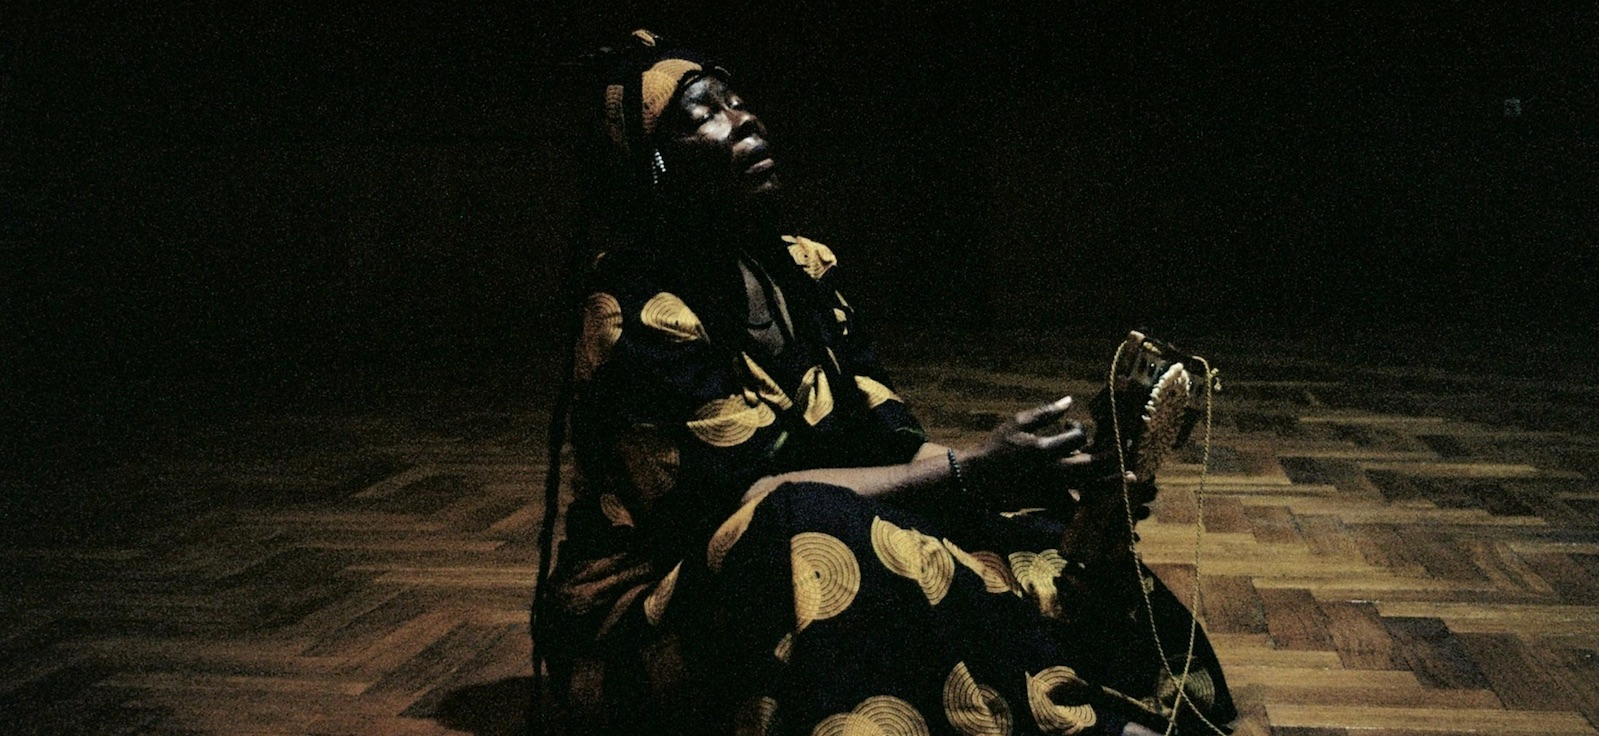 African Acid Is the Future celebrates Niger's Taureg groove and gwo